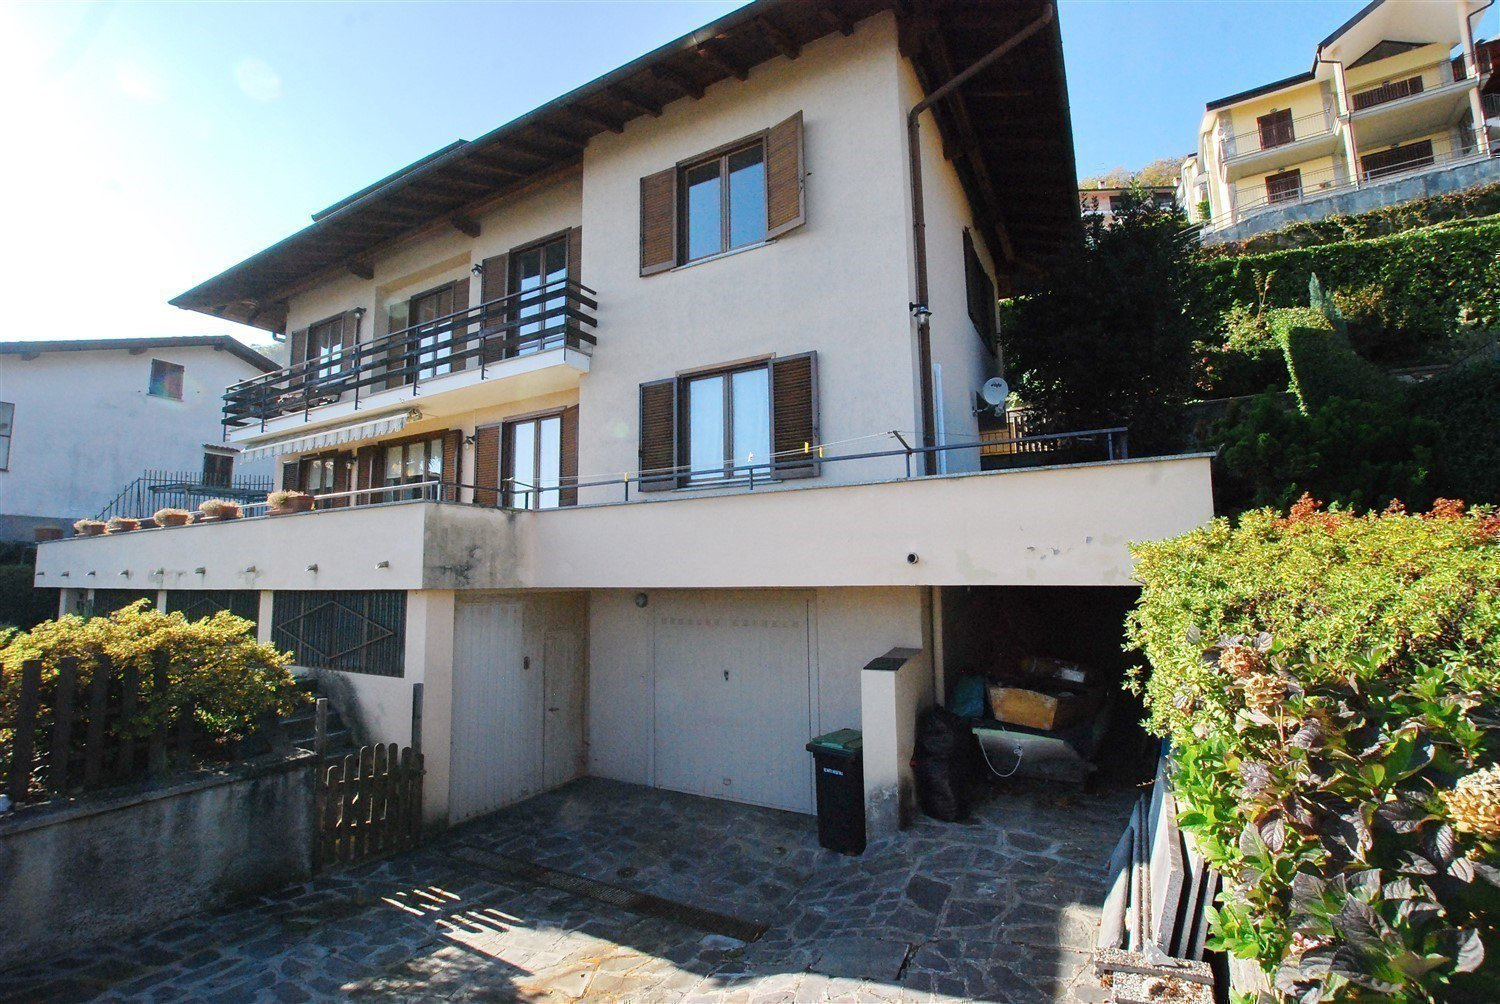 Apartment for sale in Belgirate - outside